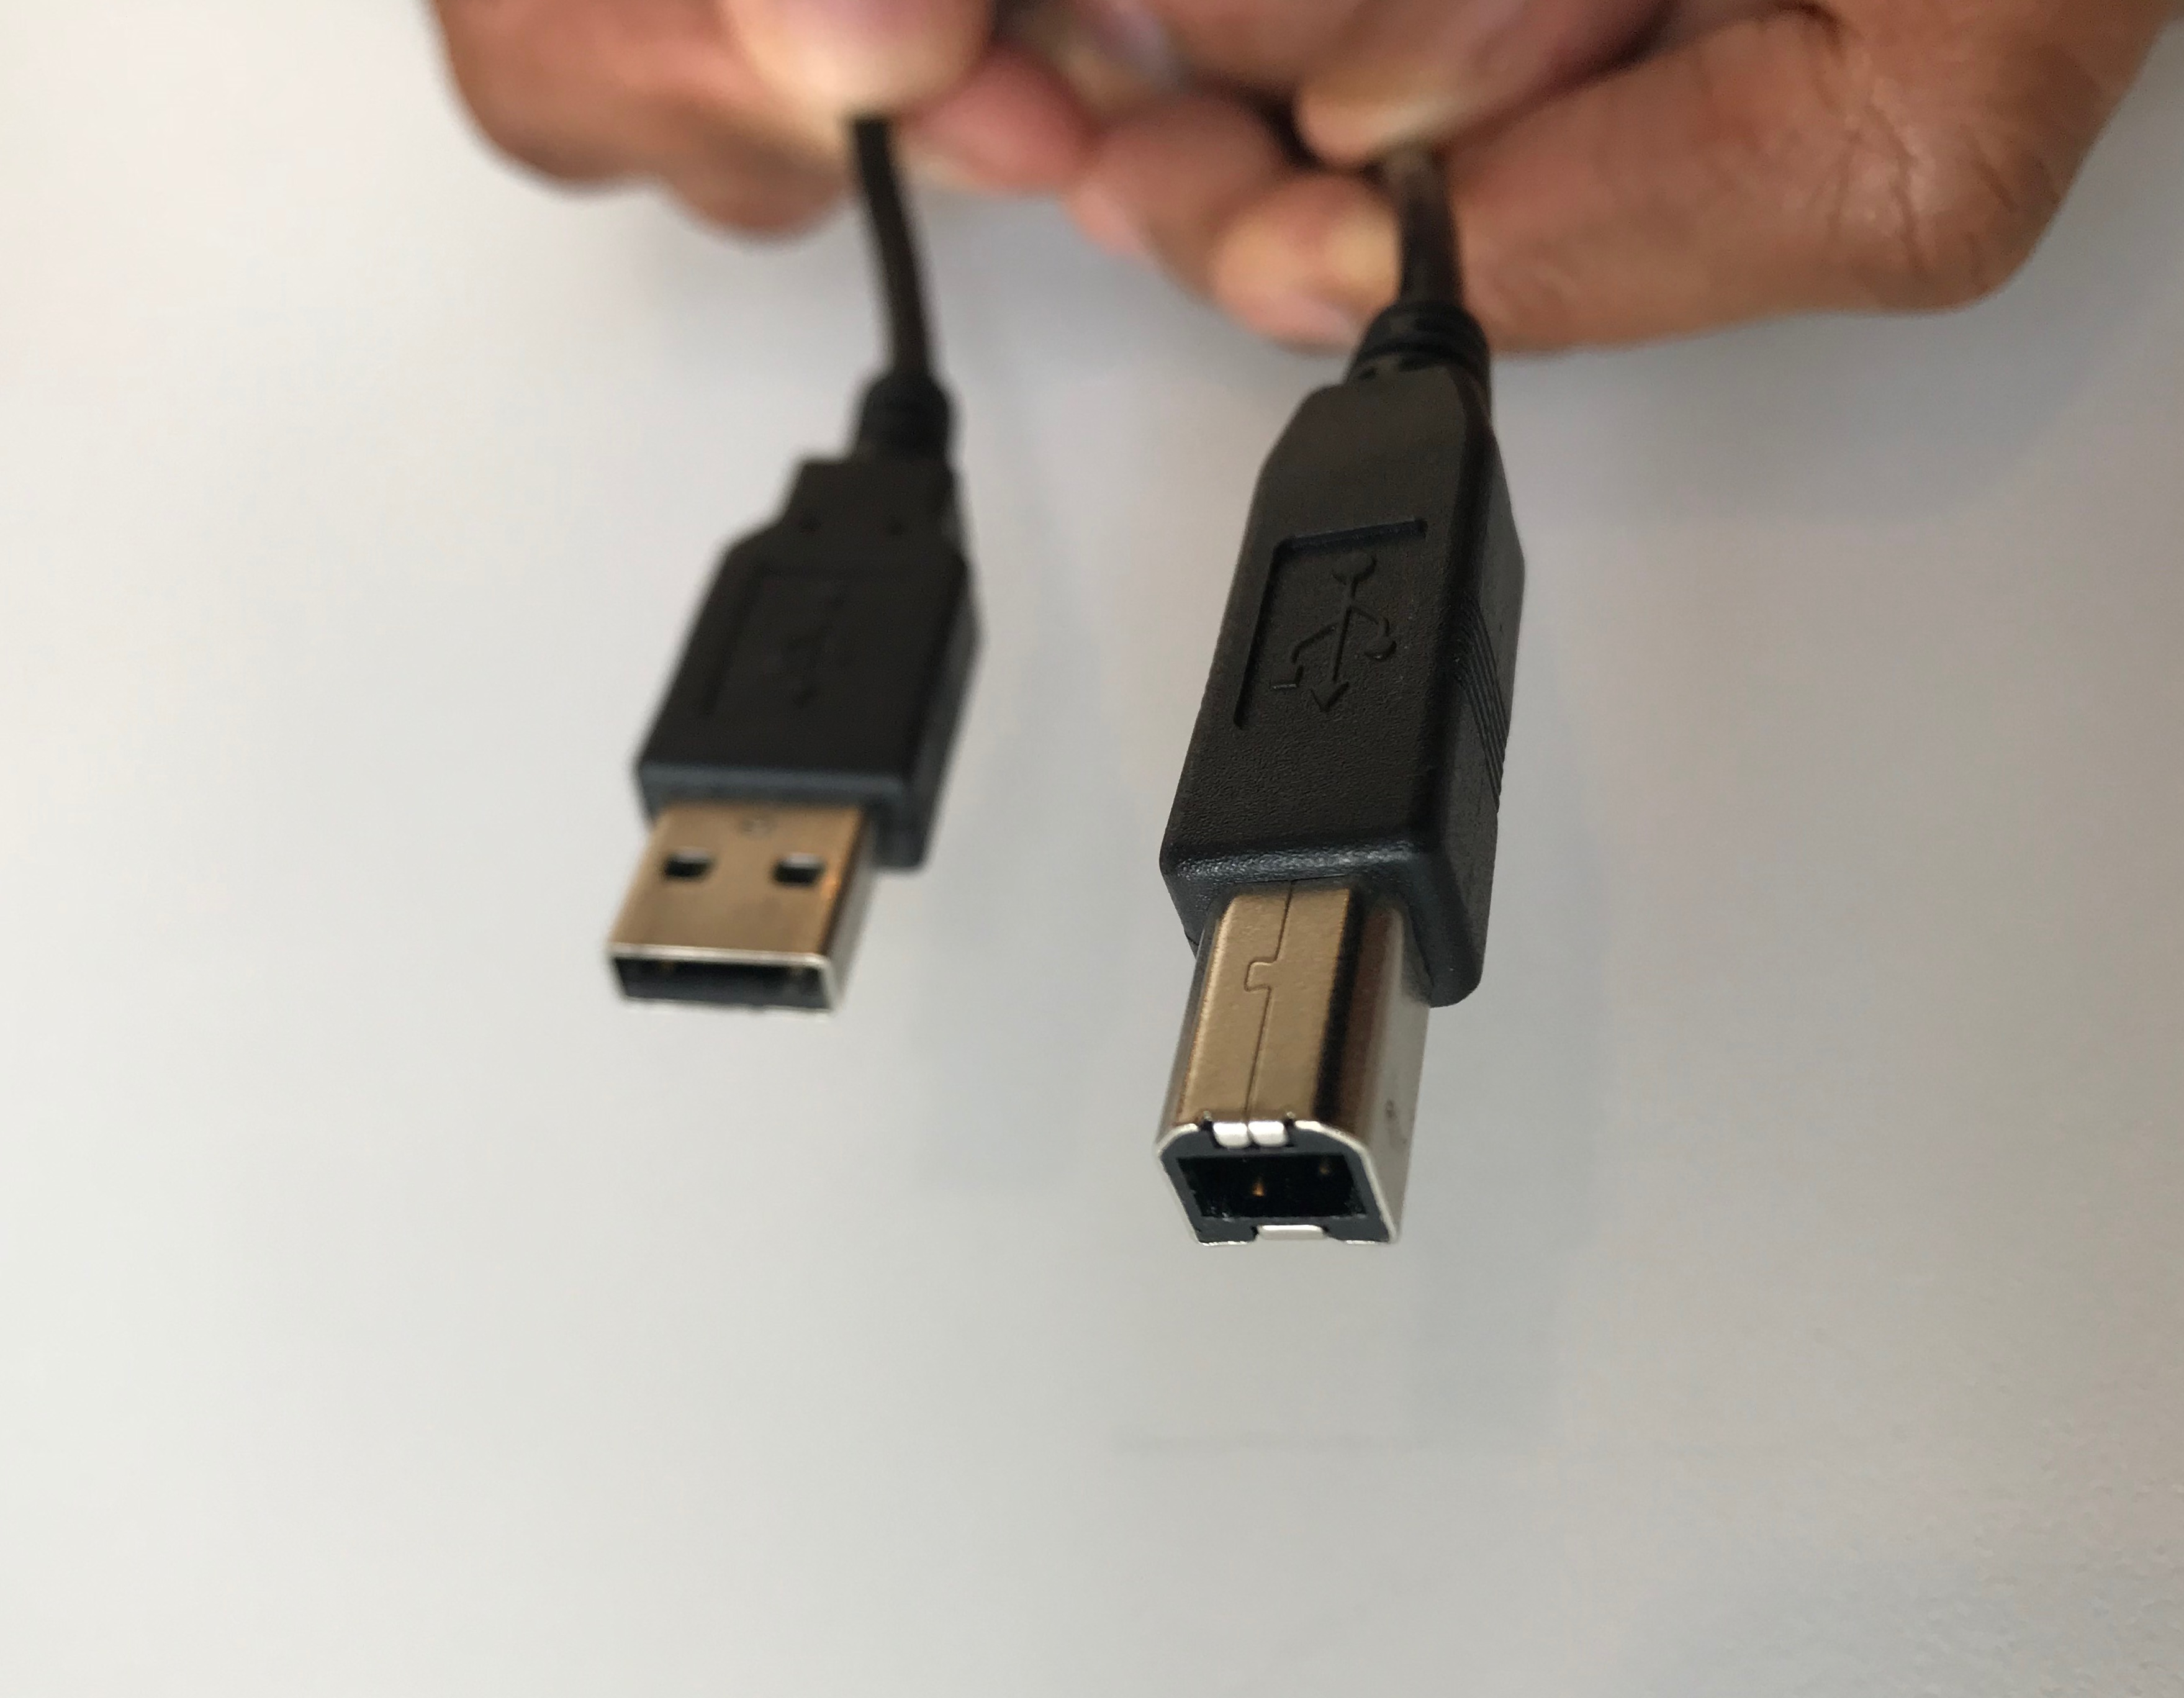 USB_cable.JPG